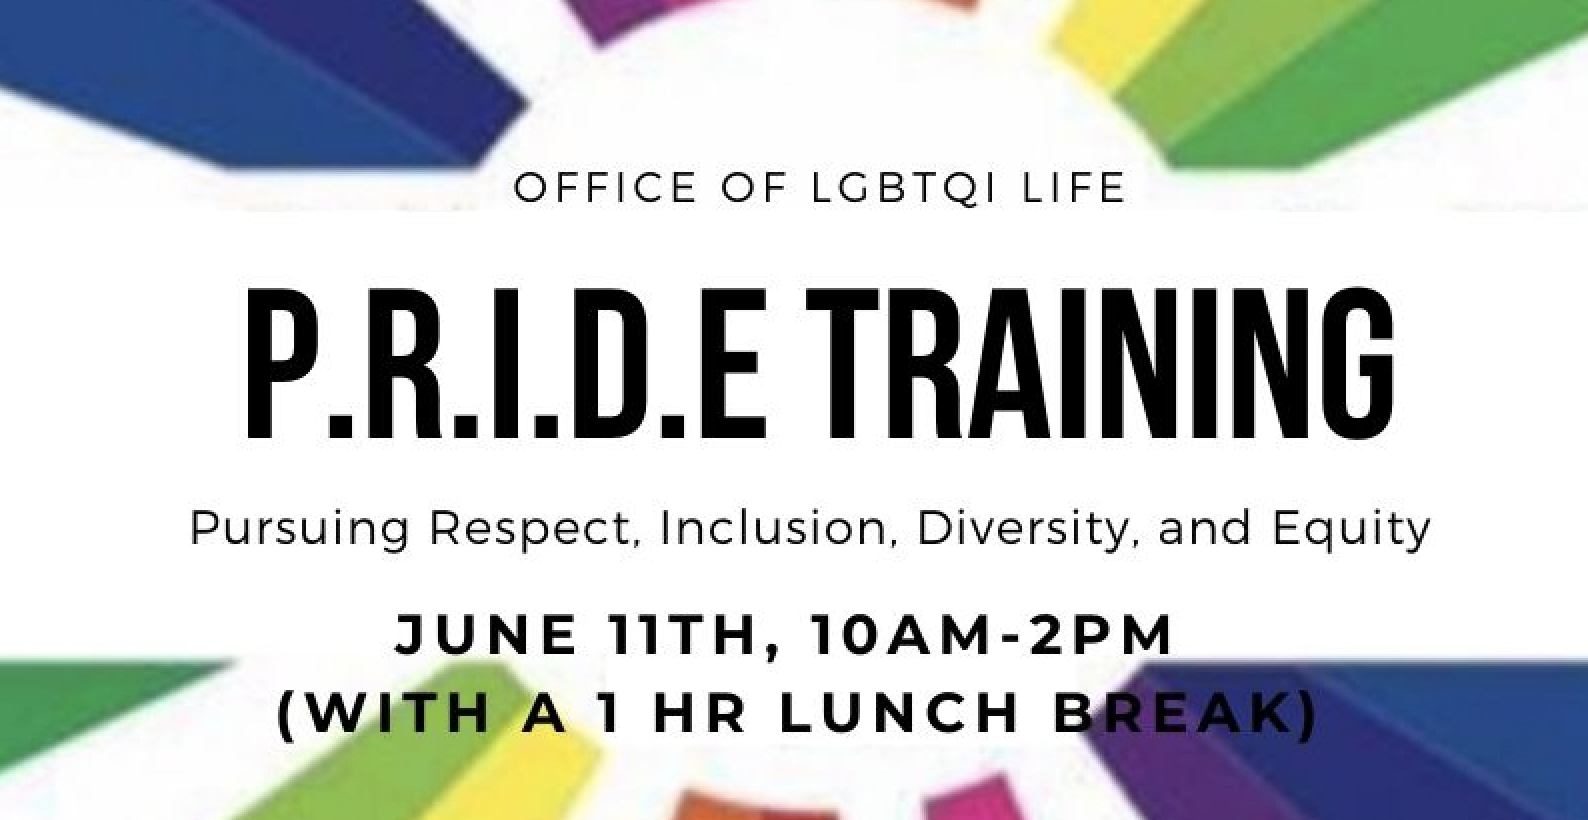 Office of LGBTQI Life PRIDE Training; Pursuing Respect, Inclusion Diversity and Equity; June 11, 10 a.m. to 2 p.m. with a 1 hour lunch break